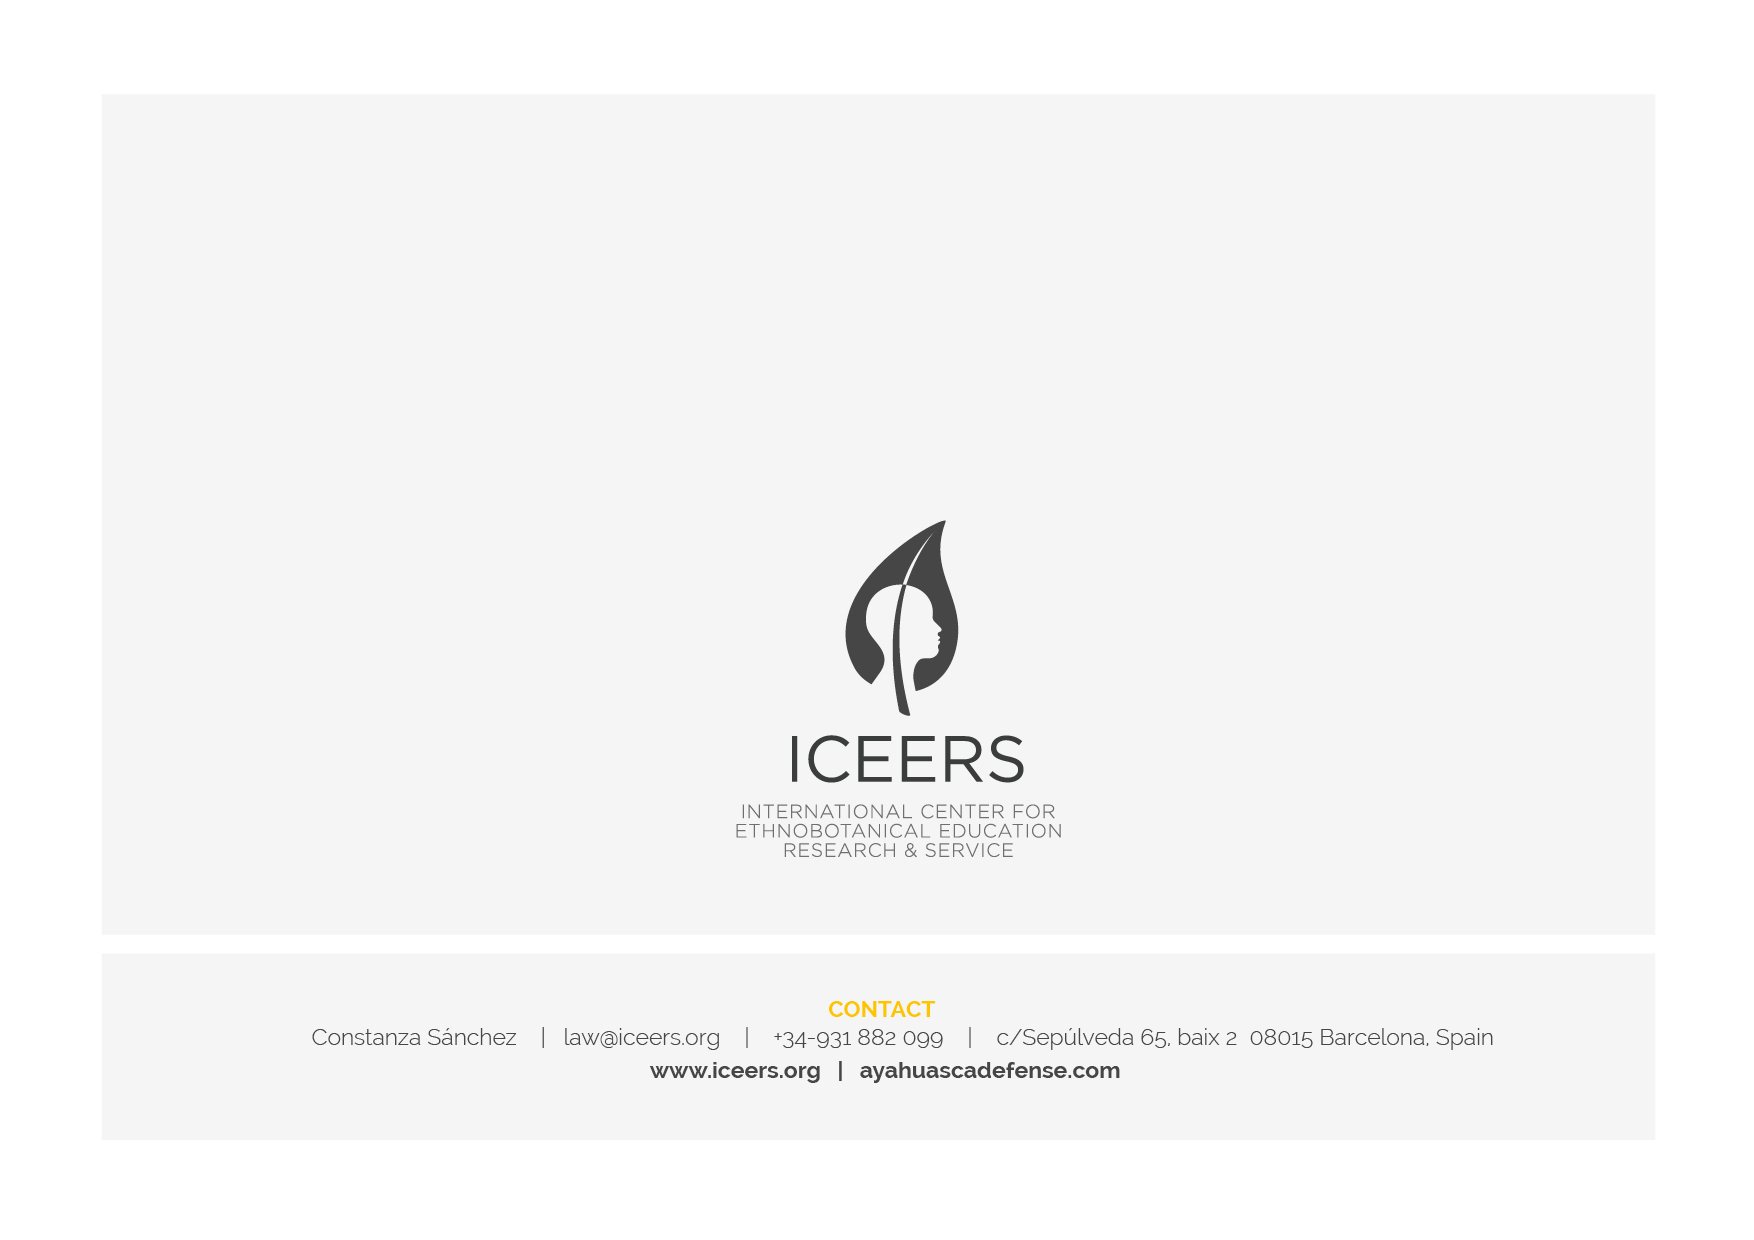 ICEERS_ADF_annual report10